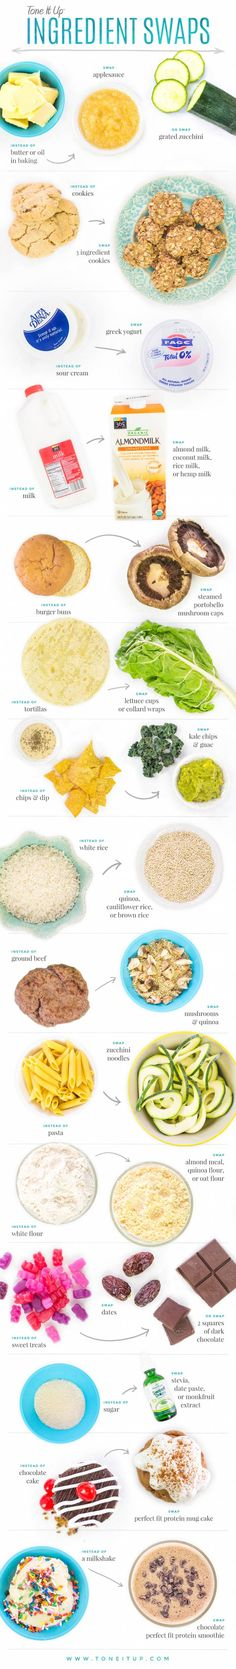 Healthy Everyday Swaps!